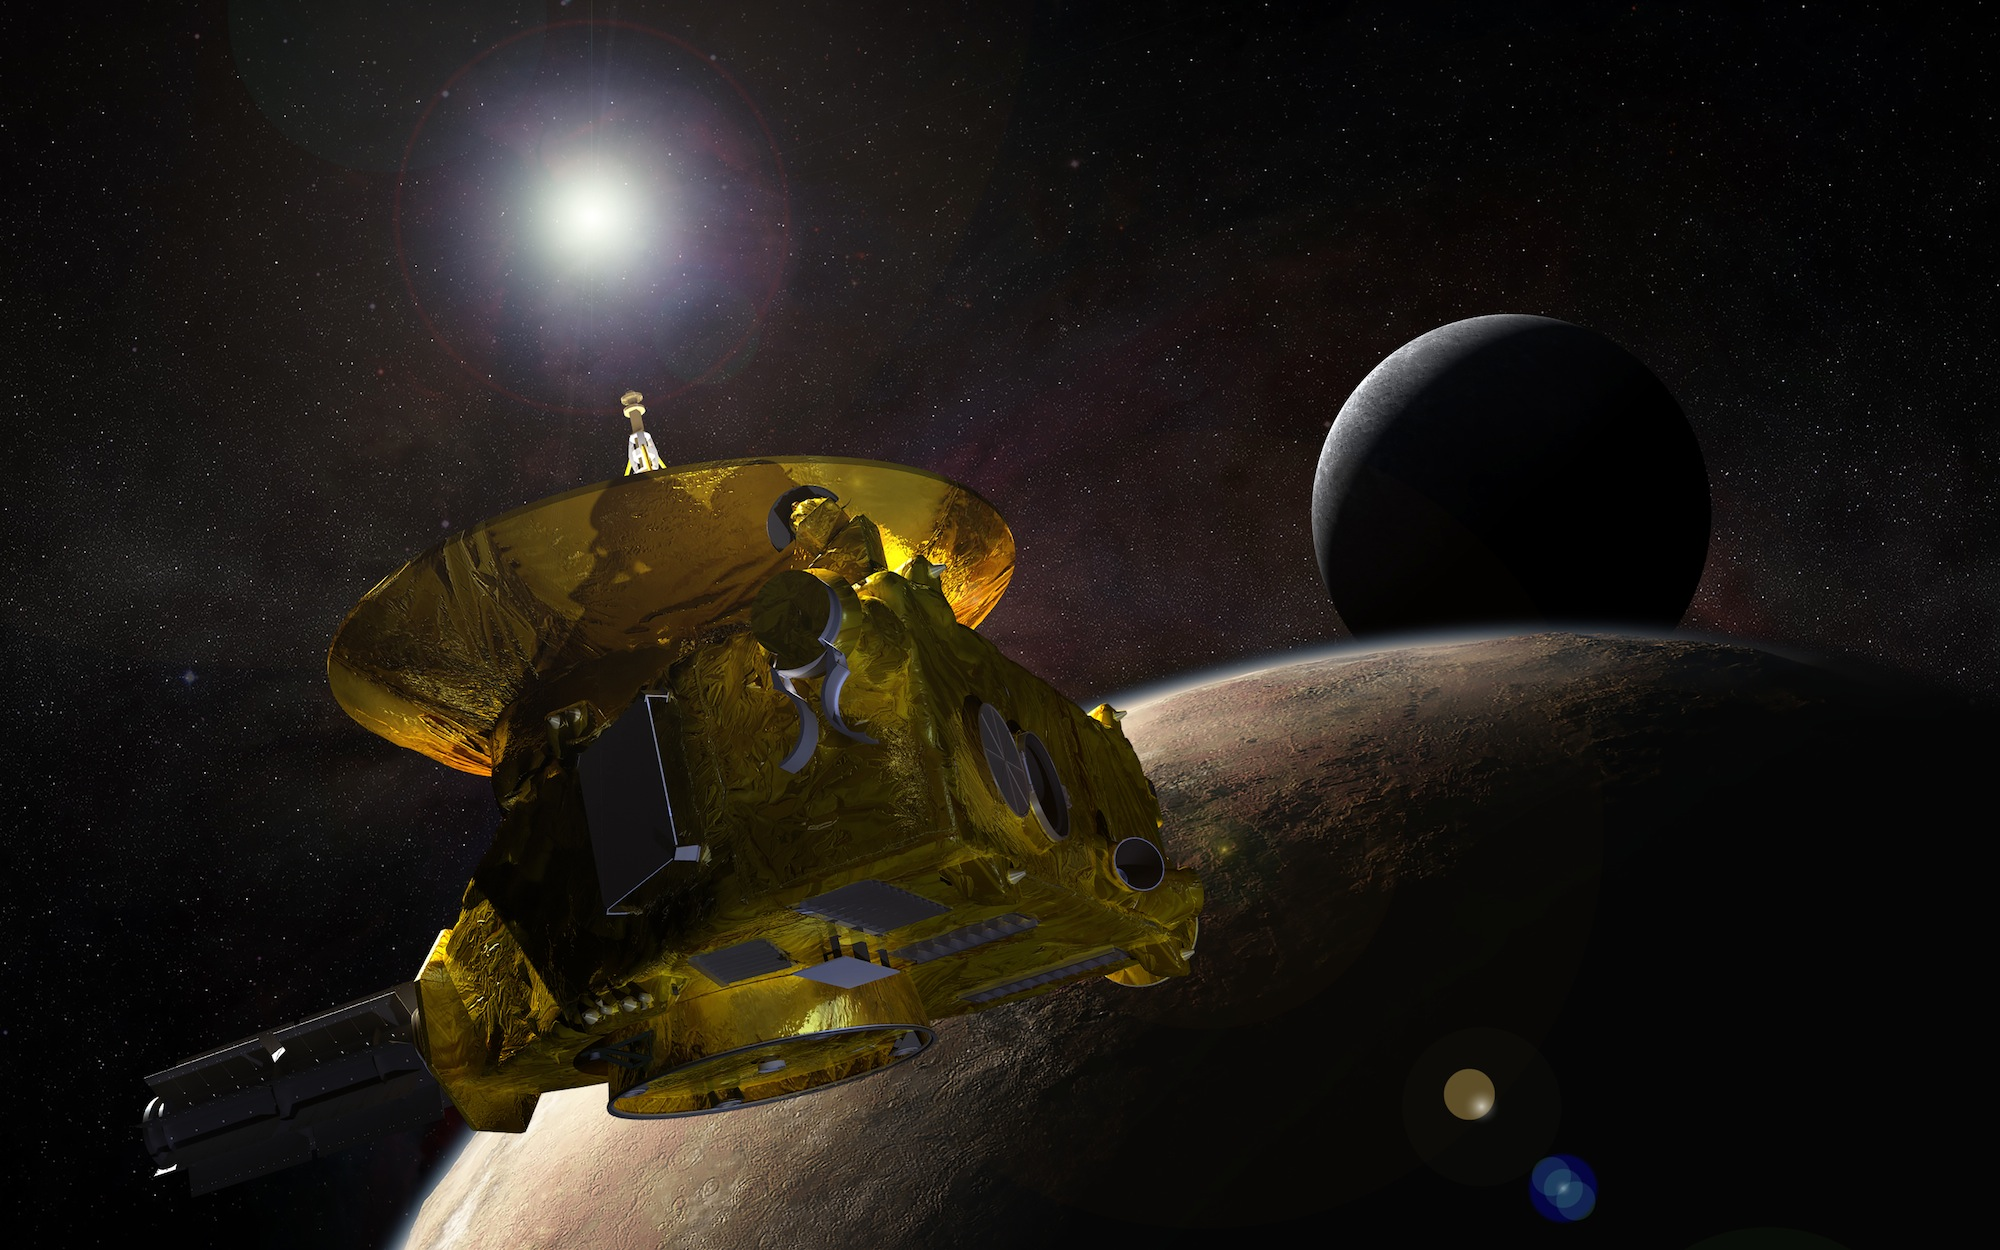 <p>Artist's concept of the New Horizons spacecraft encountering Pluto and its largest moon, Charon.</p>